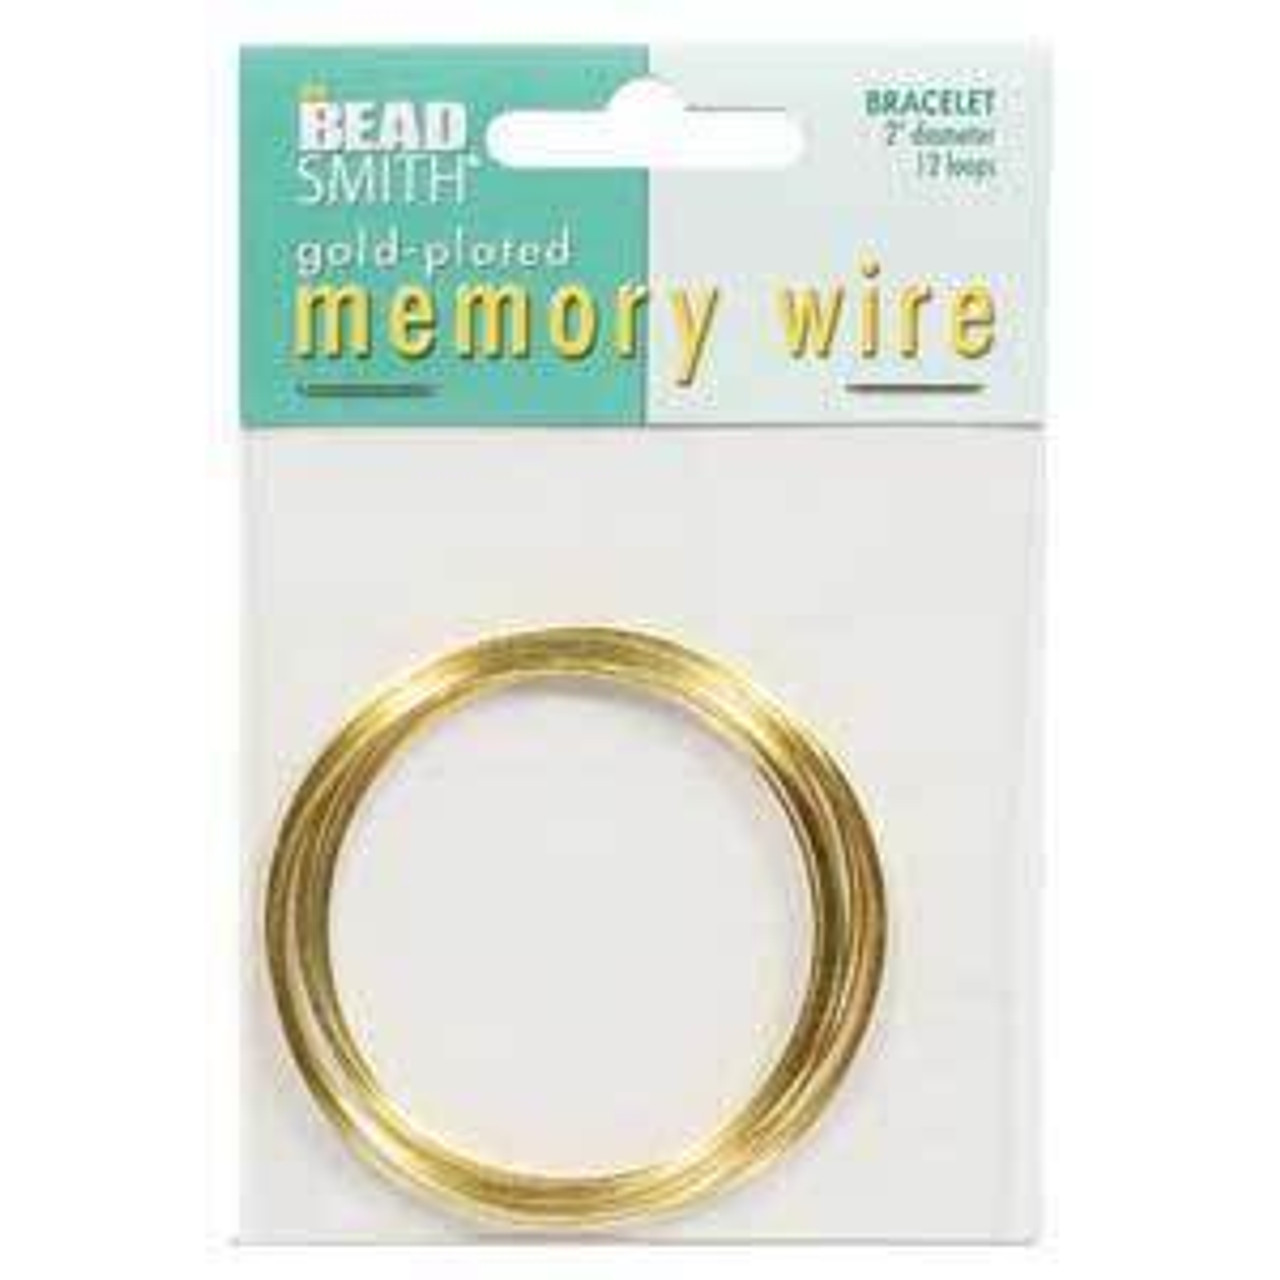 Memory Wire